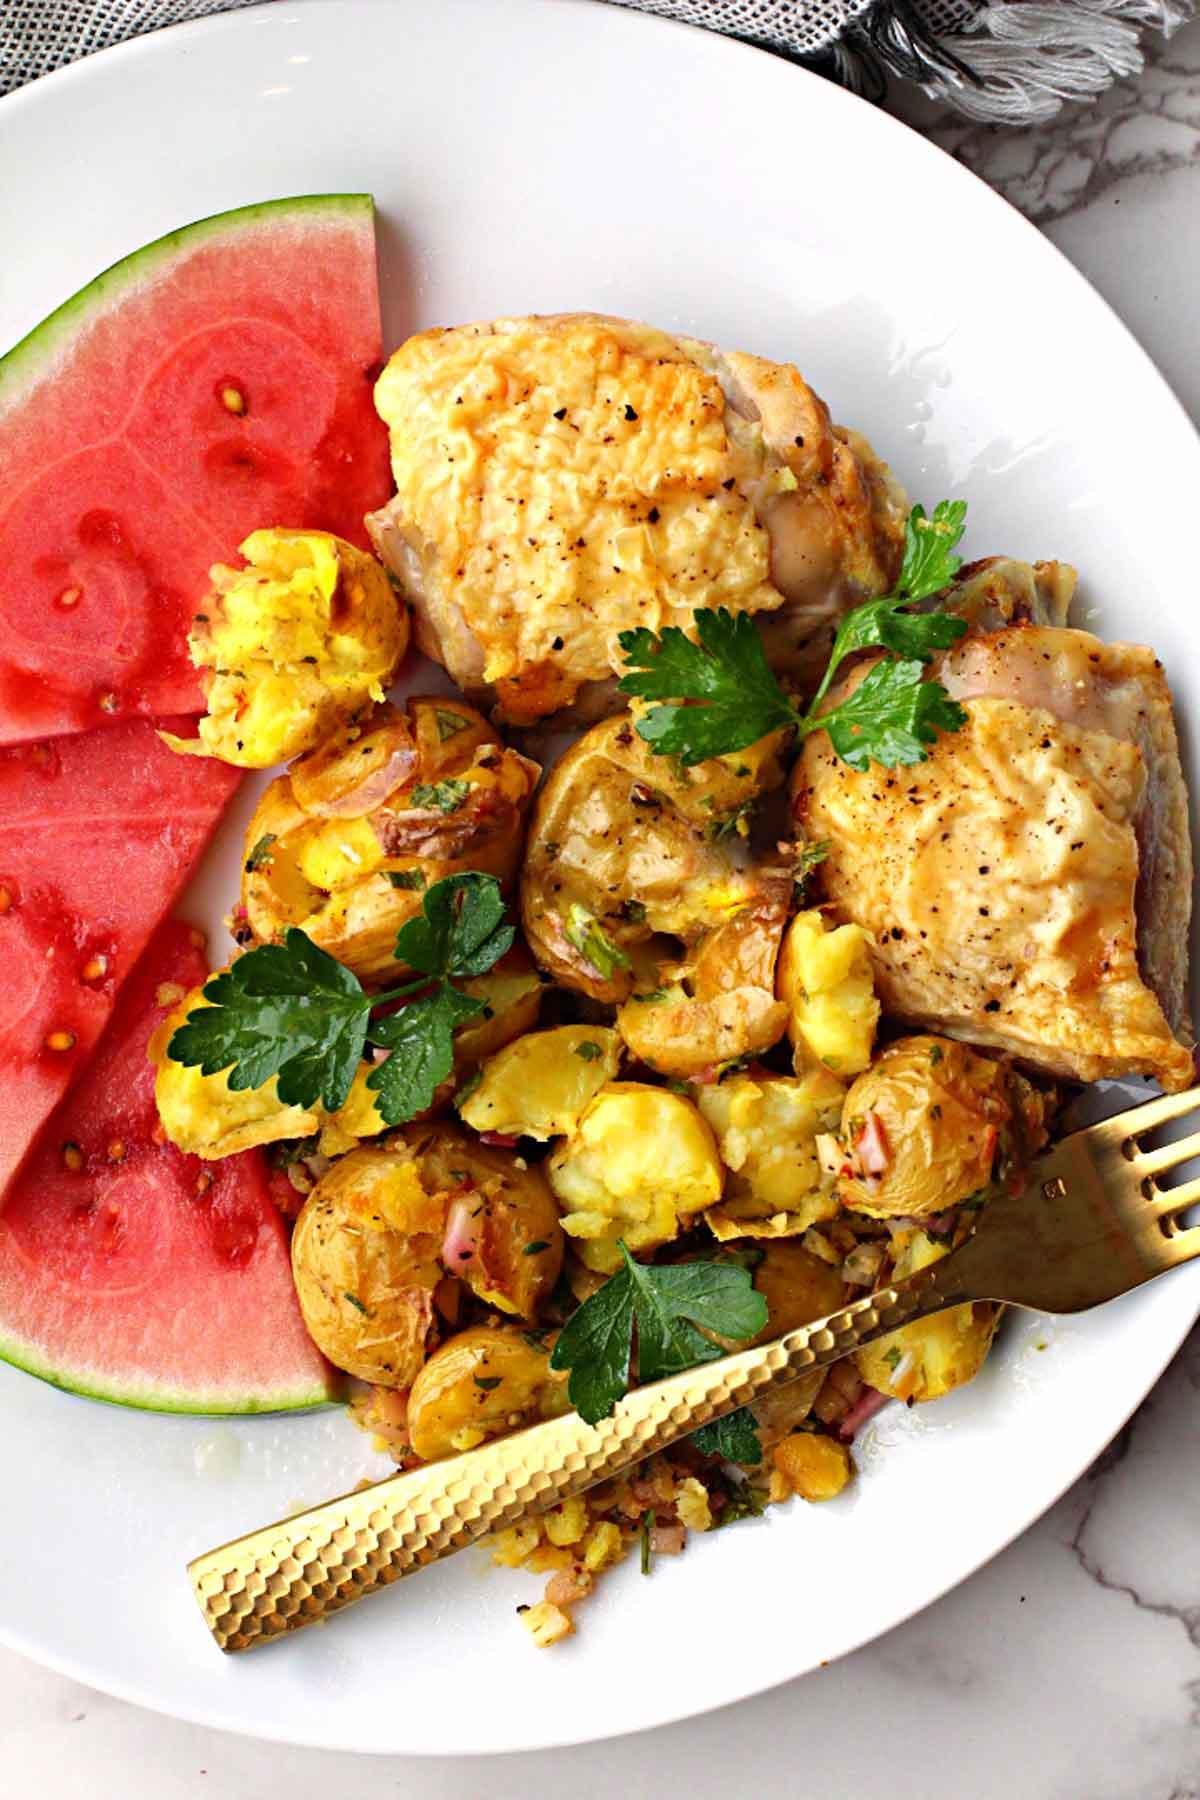 lemon baked chicken thighs served with smashed potatoes and sliced watermelon